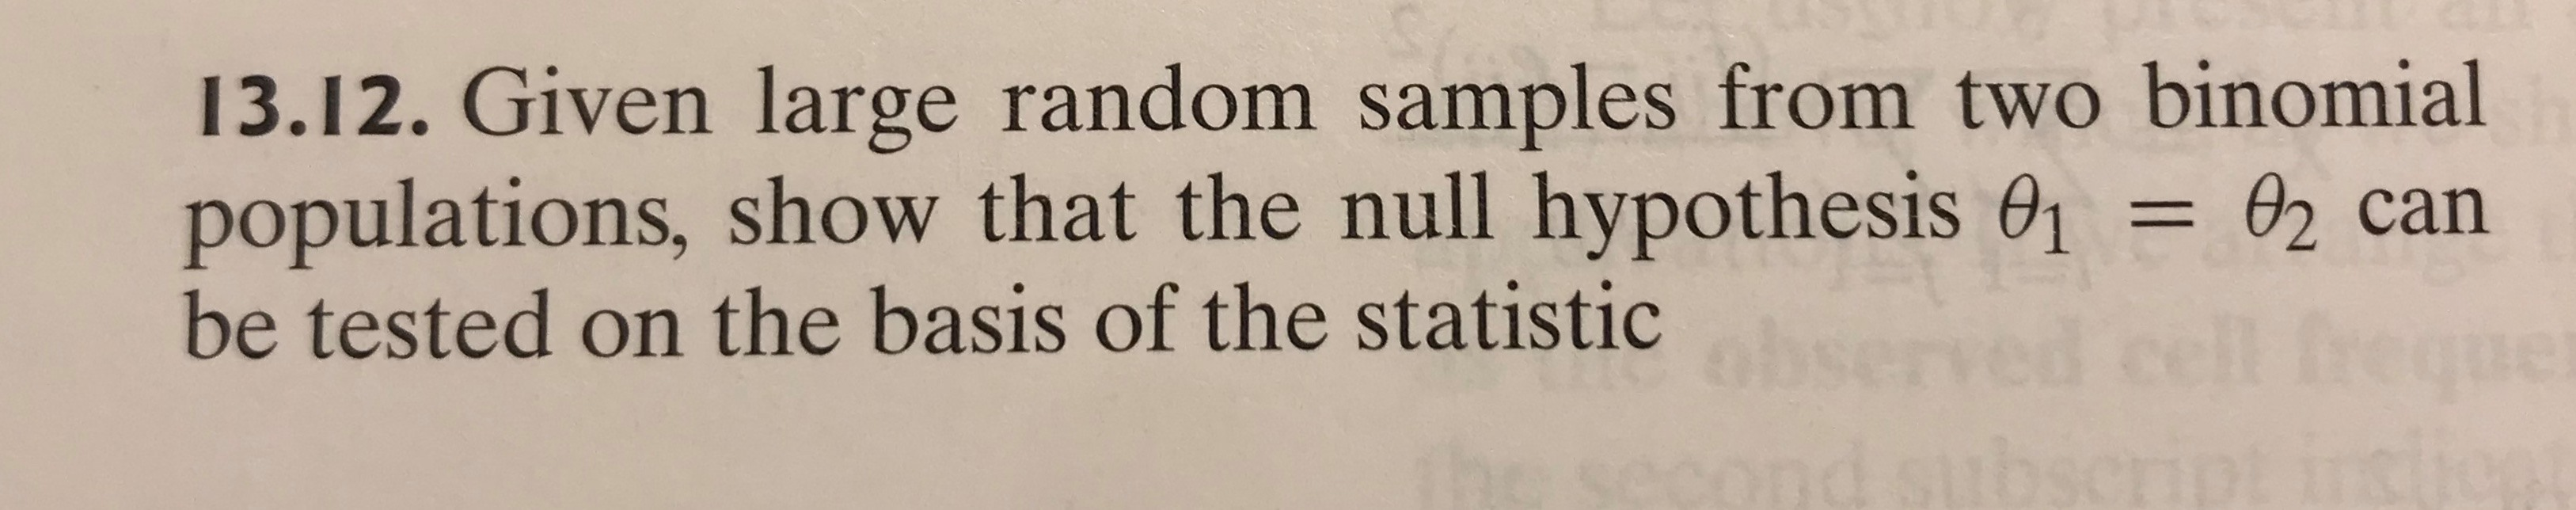 13.12. Given large random samples from two binomial populations, show that the null hypothesis 01 = 02 can be tested on the basis of the statistic